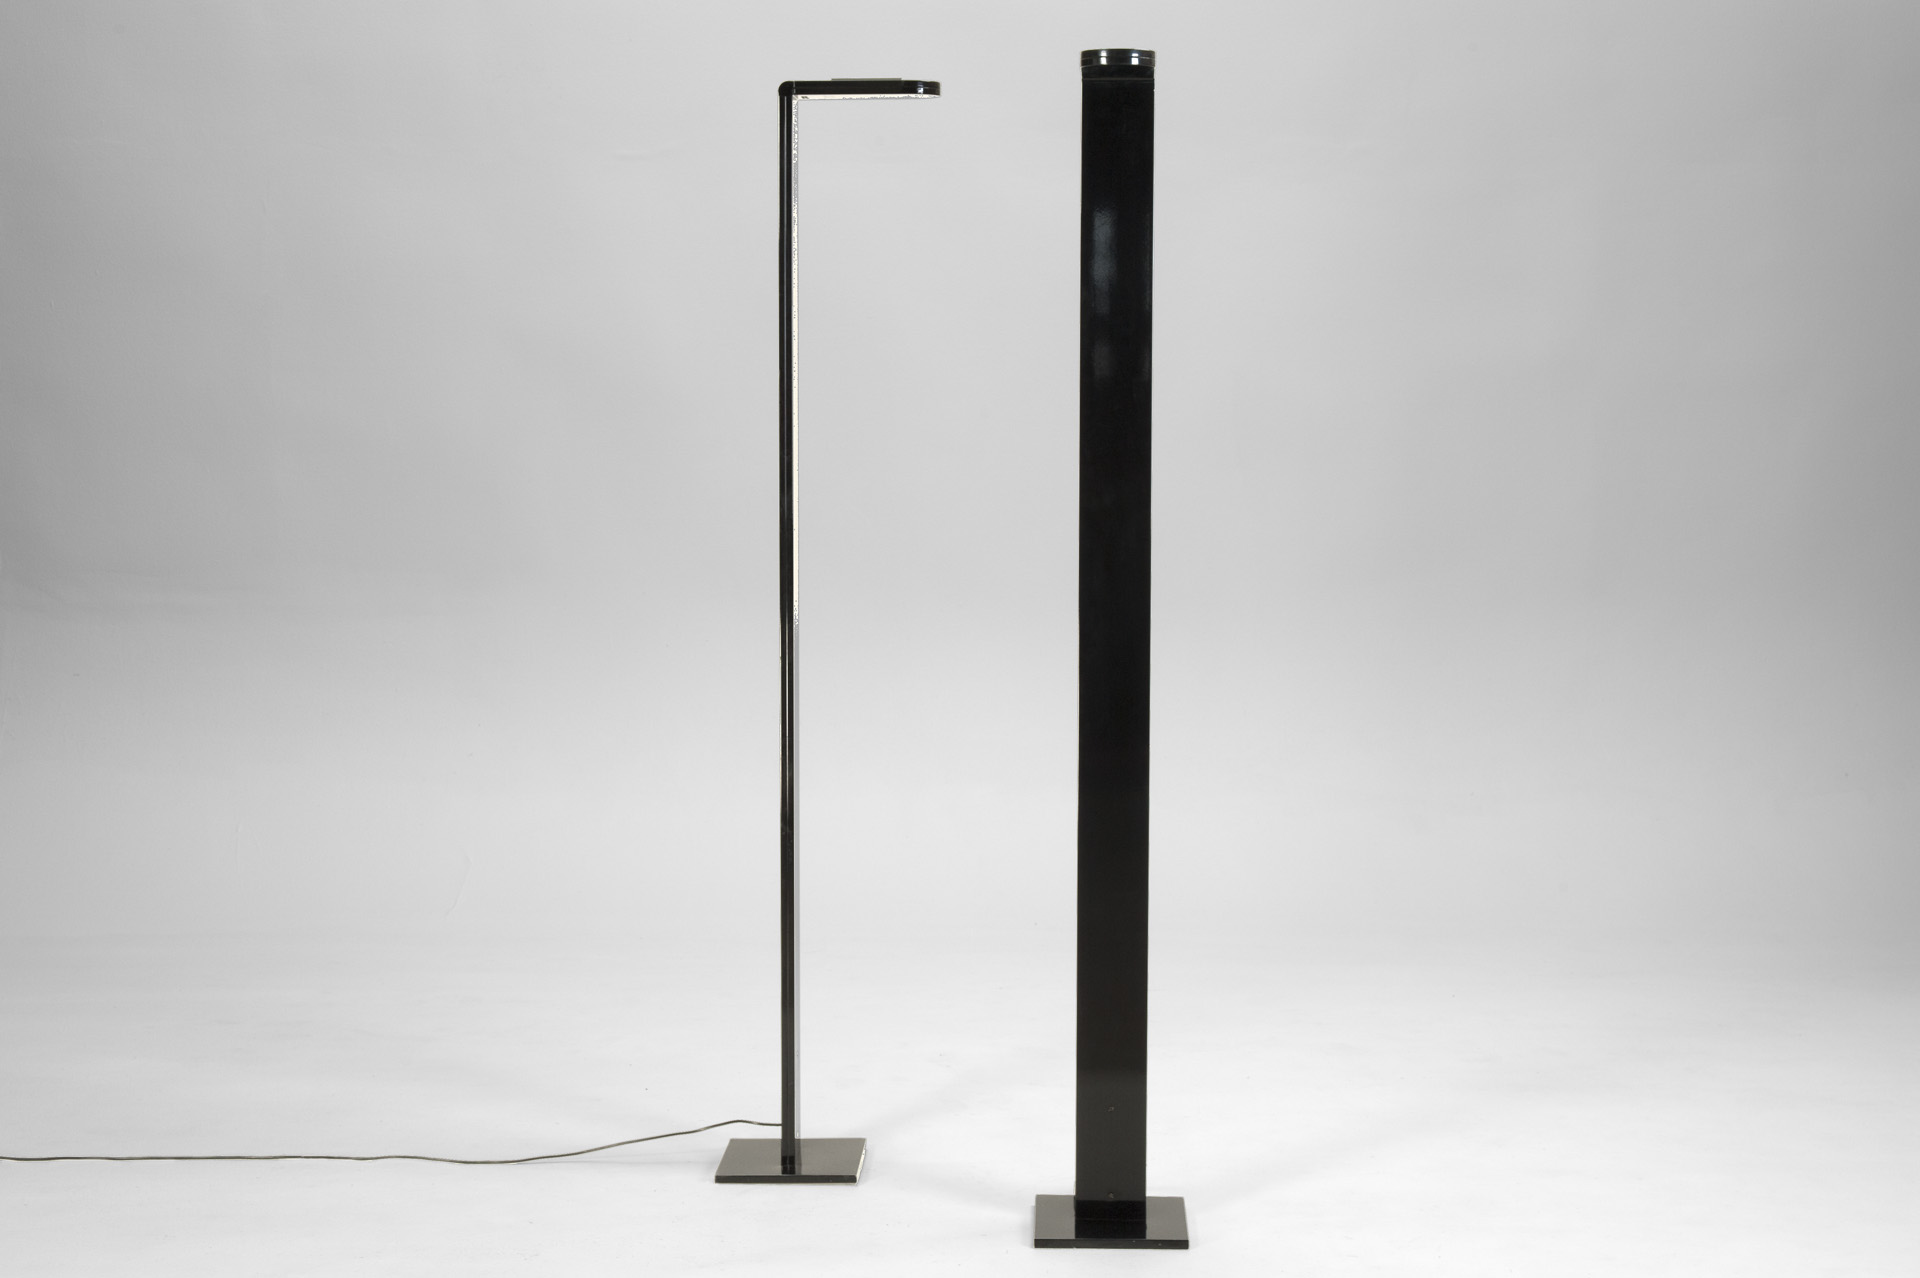 Floor Lamp Uplight.Vl38 Floor Lamp. Montana Floor Lamp ...